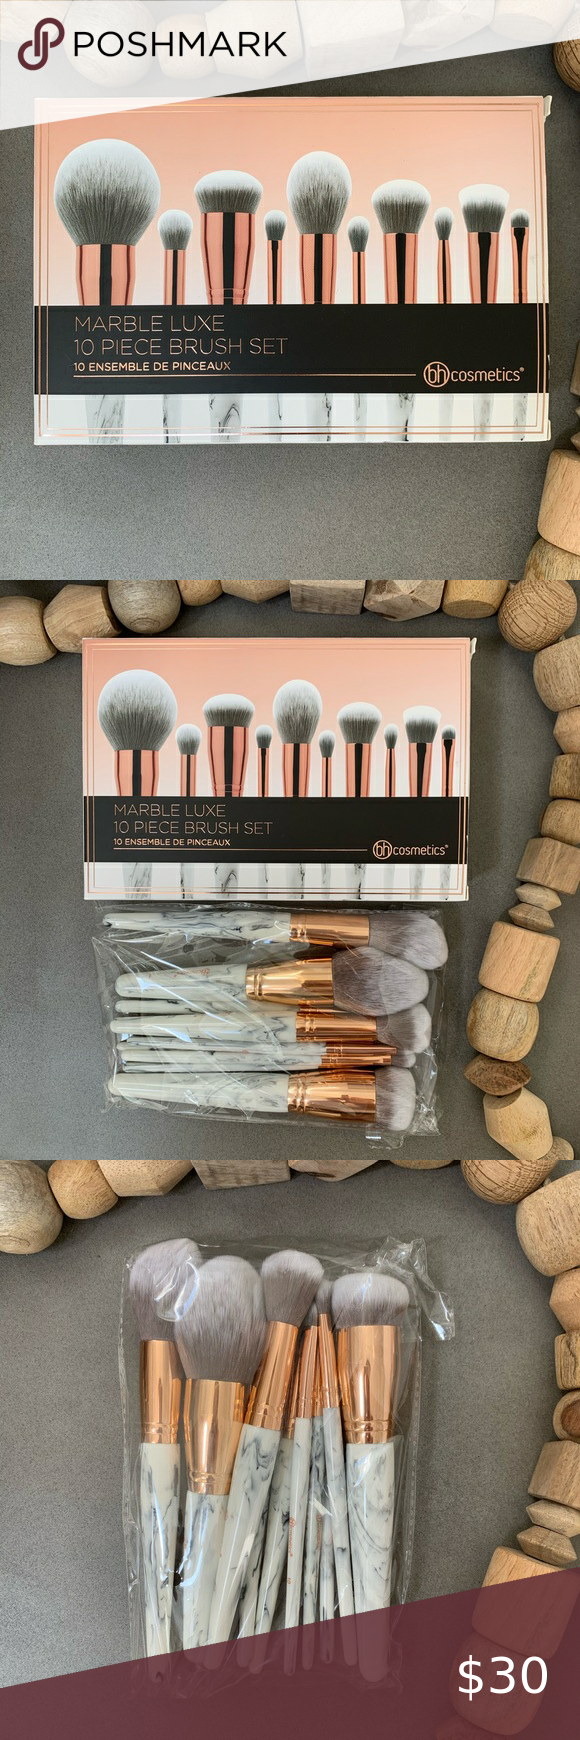 Bh Cosmetics 10 Piece Marble Brush Set In 2020 Bh Cosmetics Brush Set 10 Things